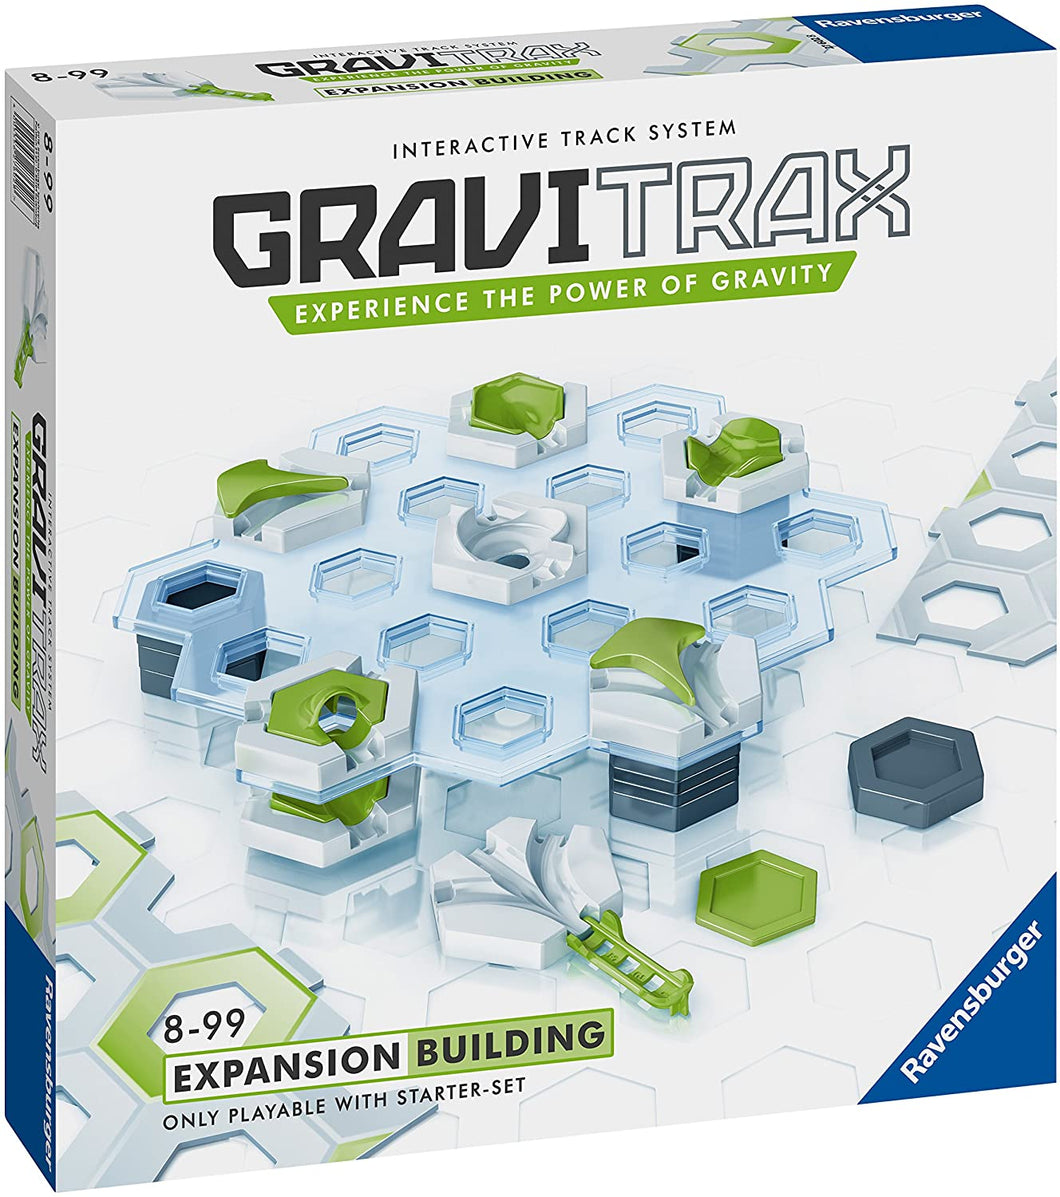 Gravitrax Building Expansion Set Marble Run & STEM Toy